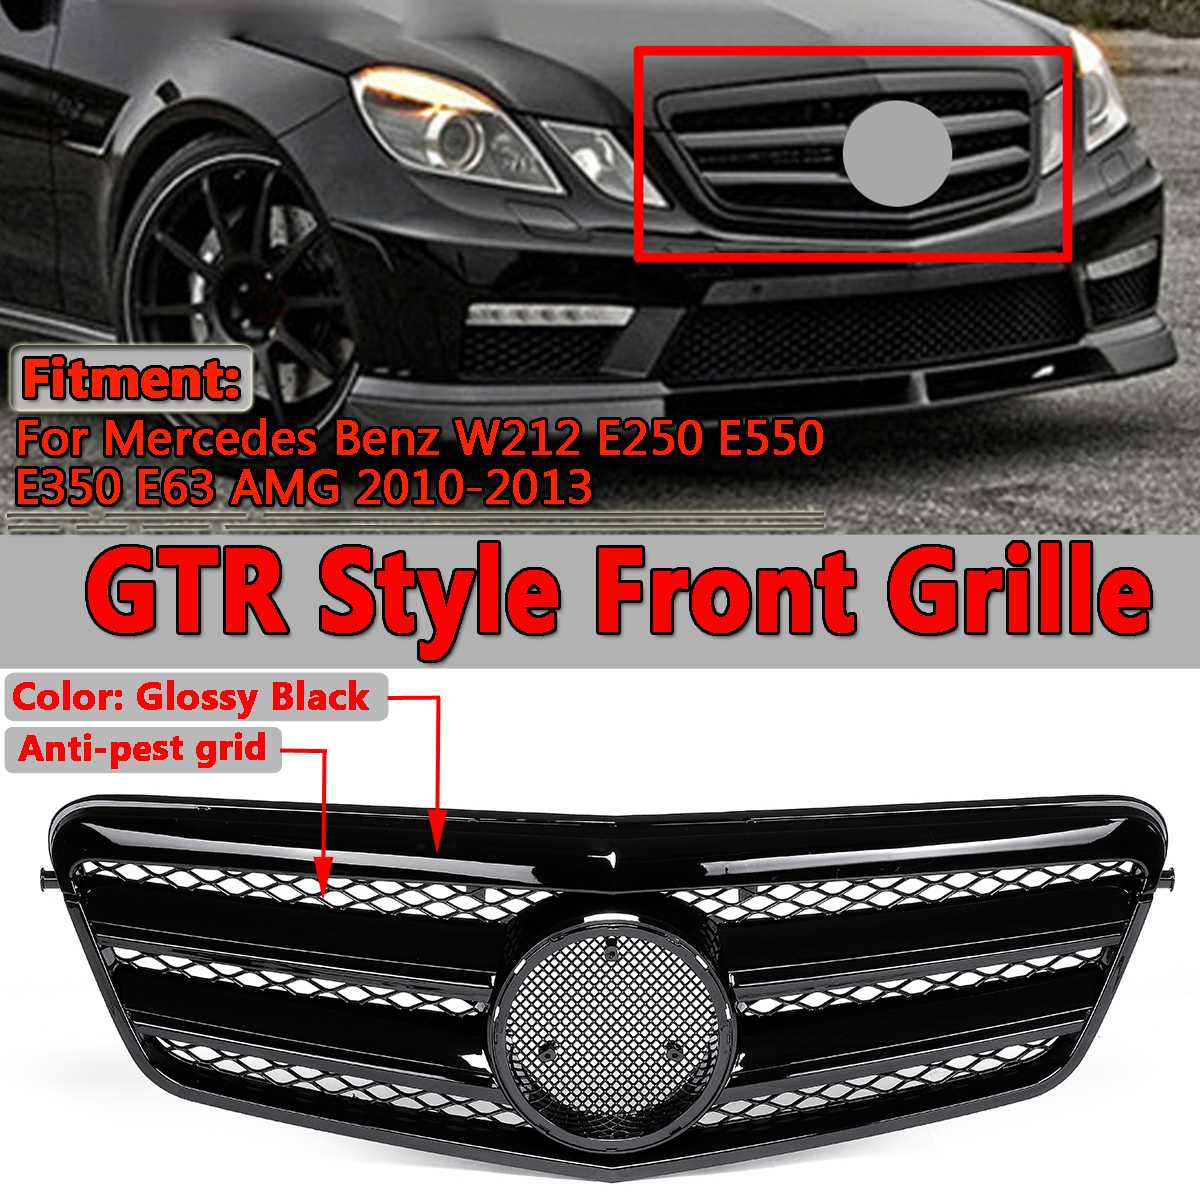 For AMG Style Car Front Grill Grille For Mercedes For Benz W212 E250 E550 E350 E63